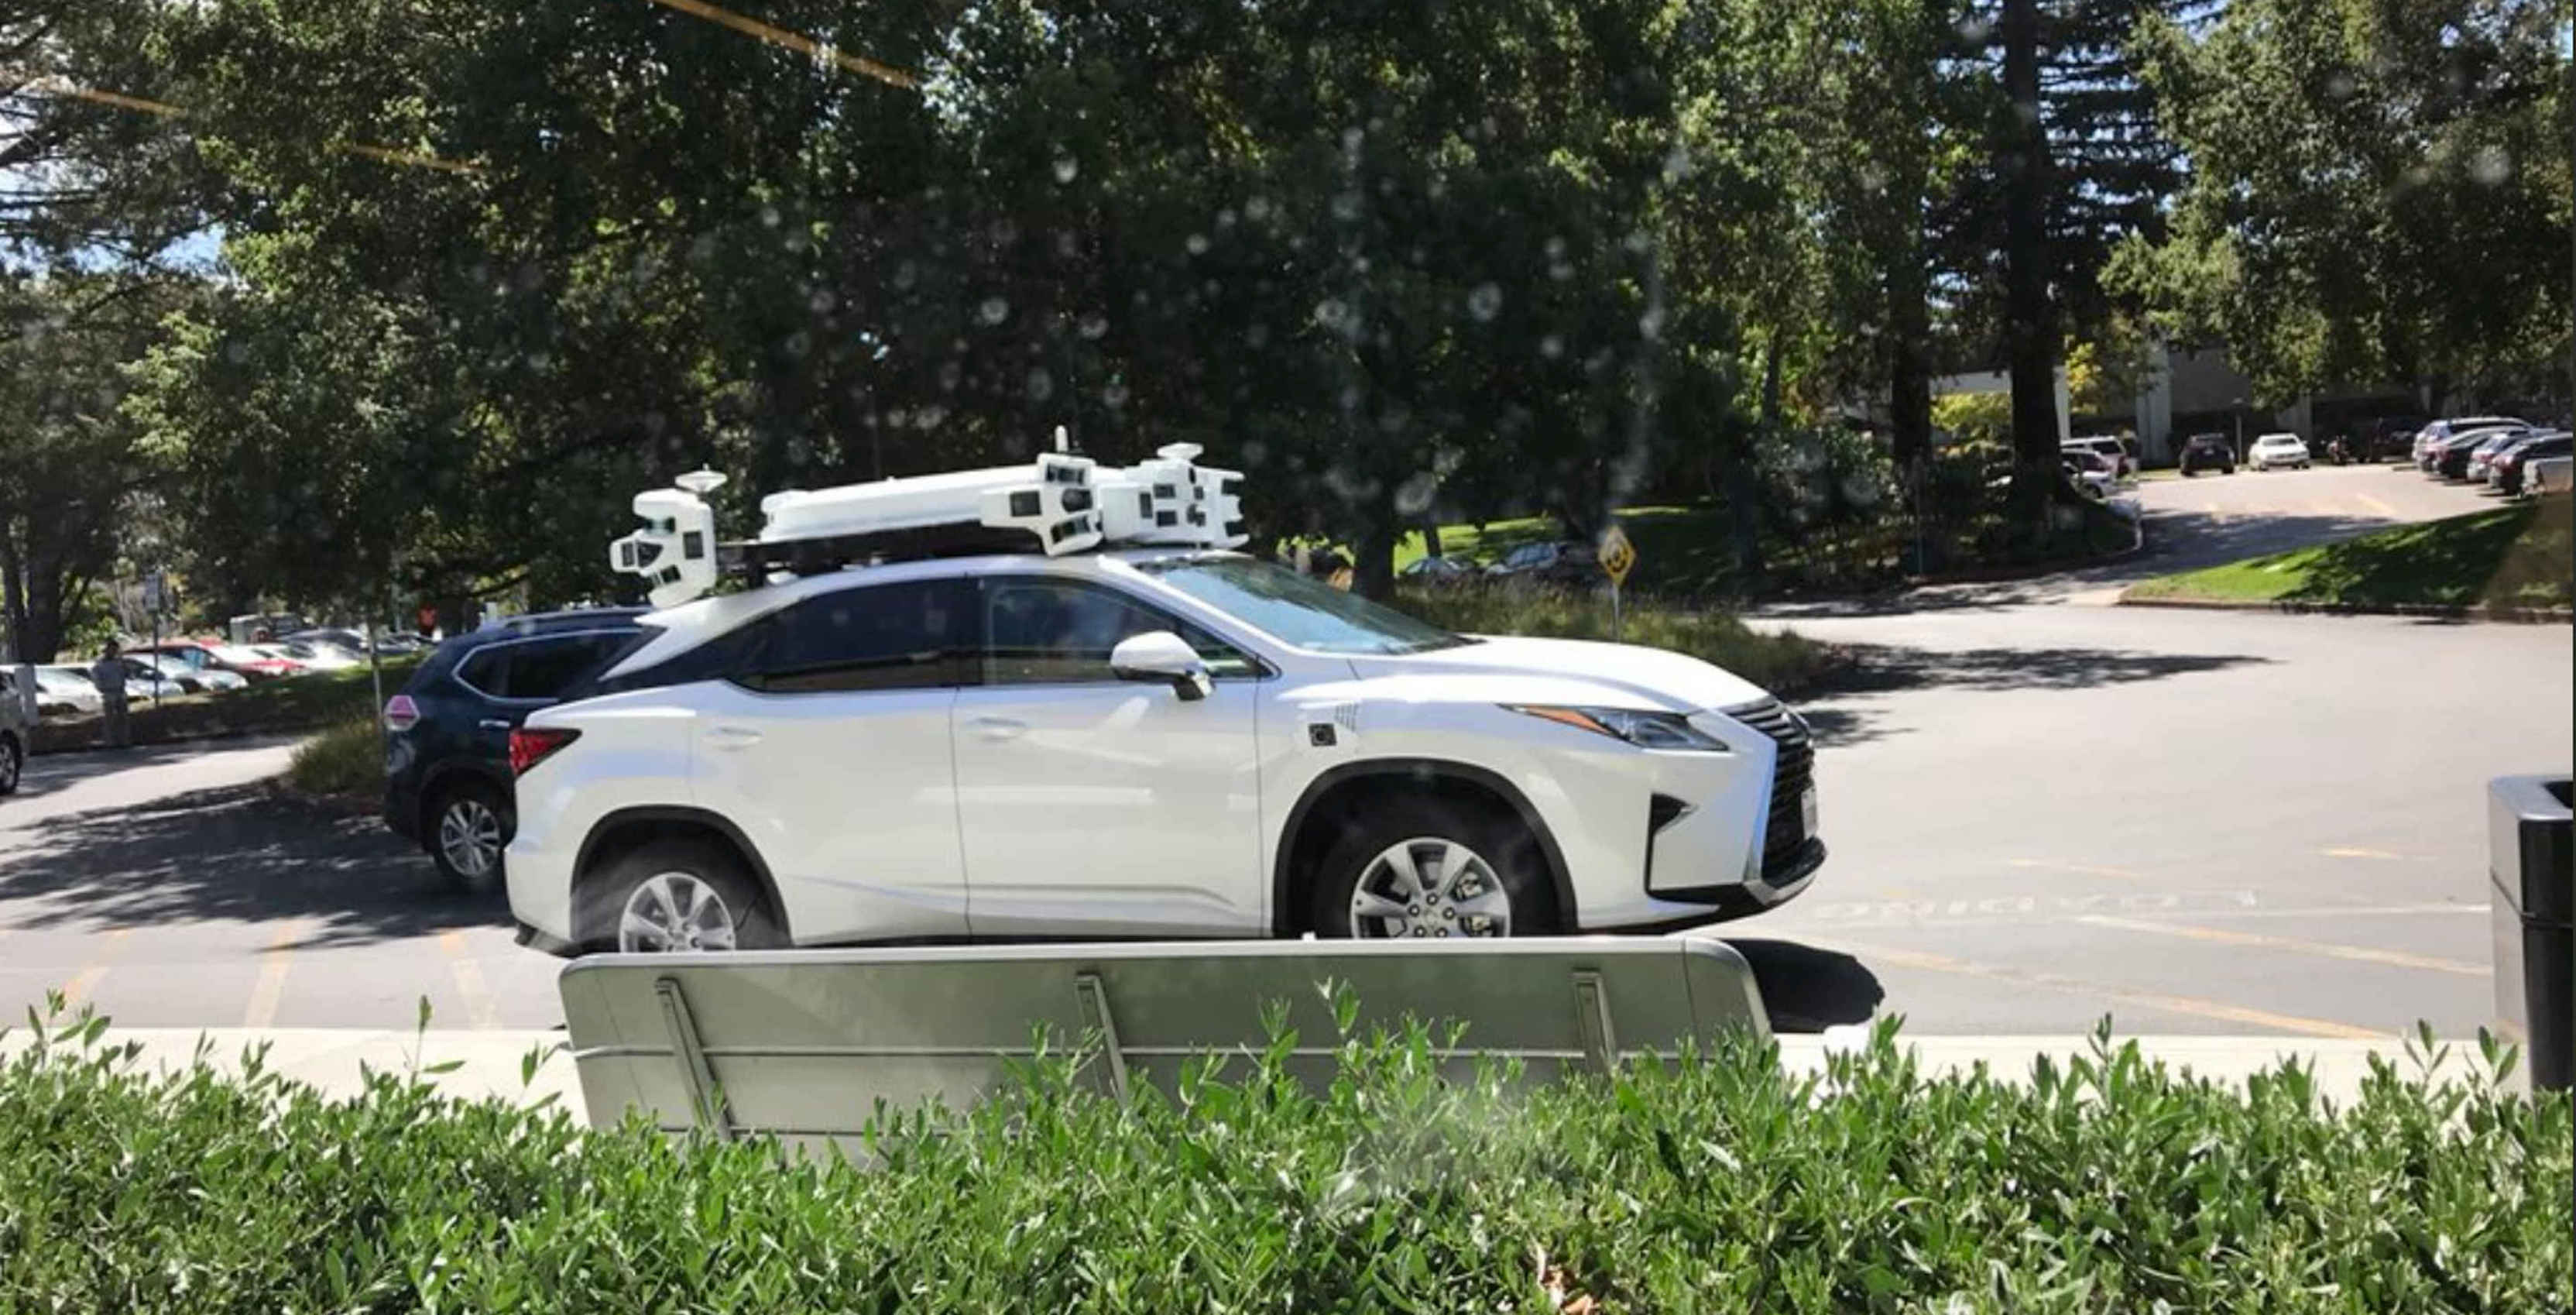 Apple has over 50 self-driving cars on the road in California